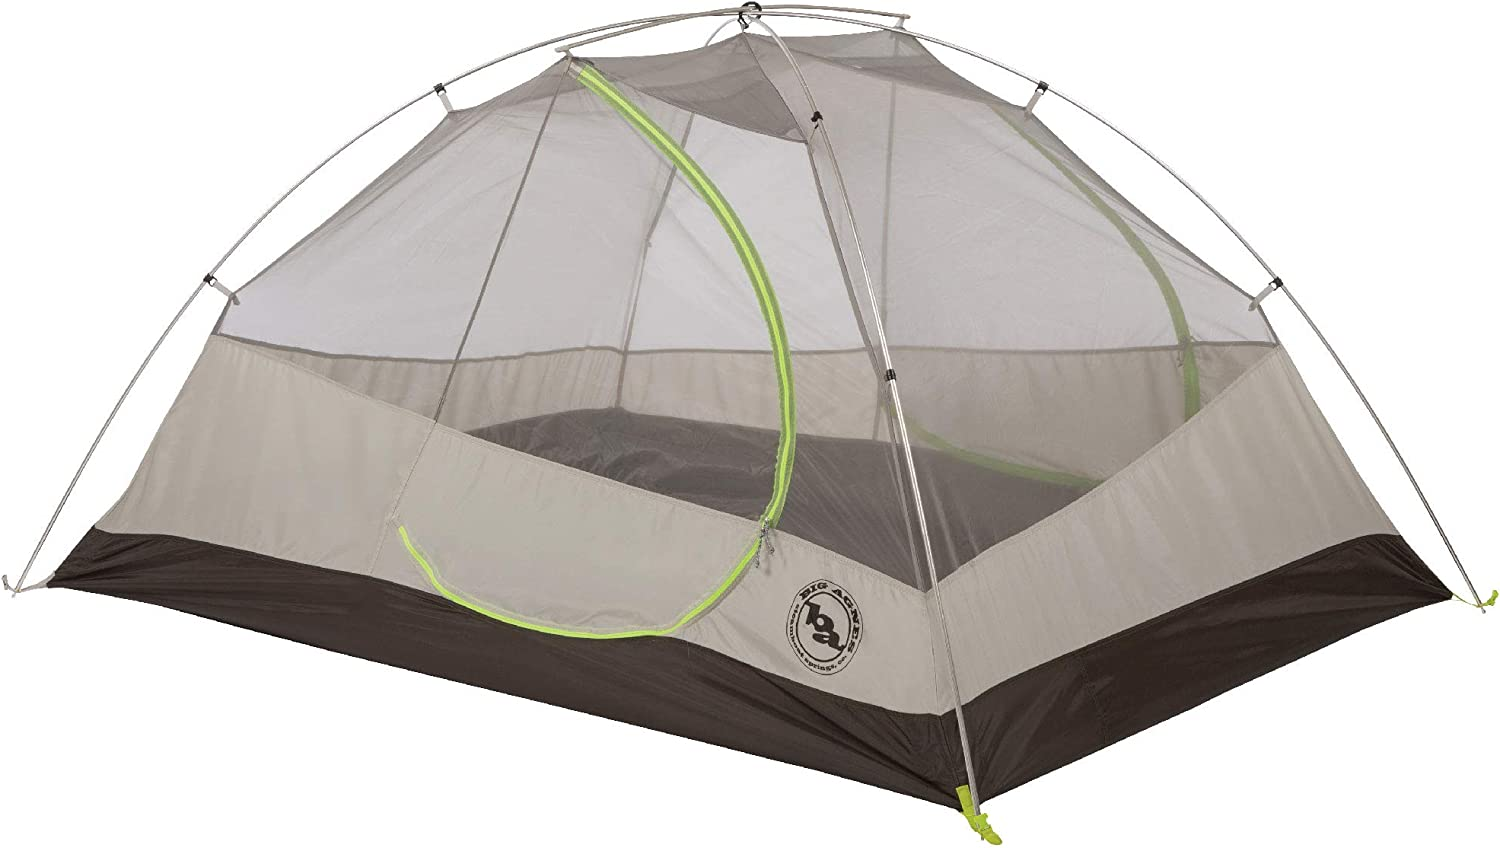 Big Agnes Blacktail Package Includes Tent and Footprint